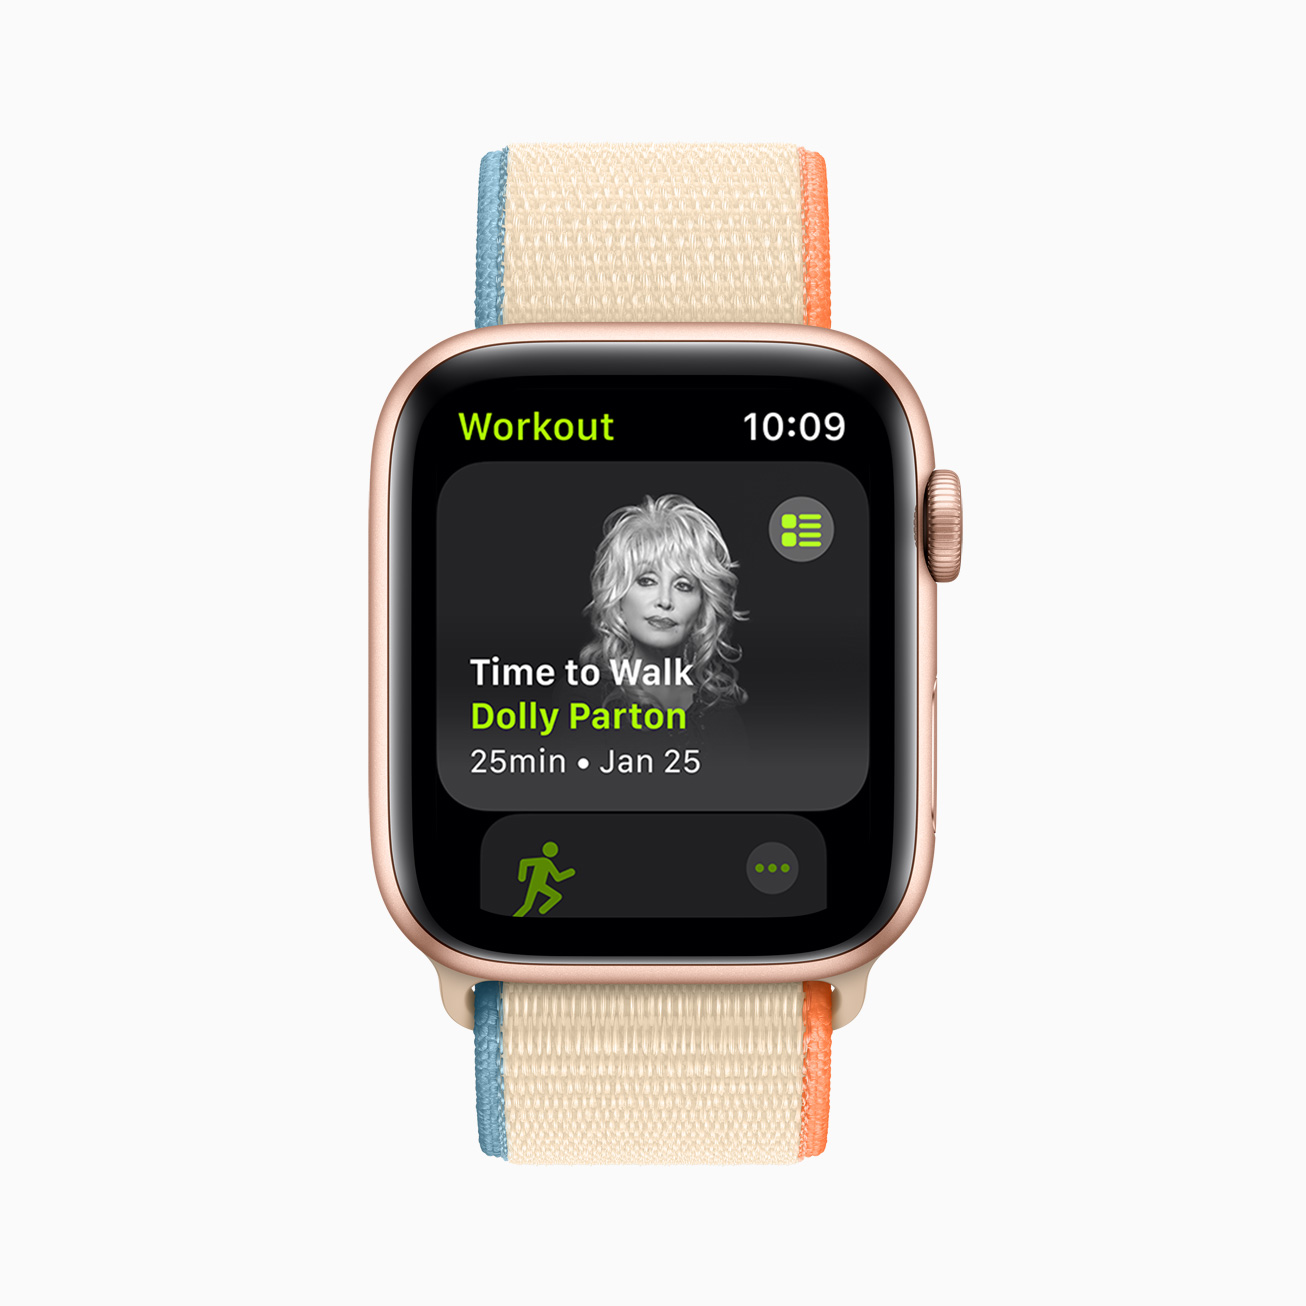 Apple Launches Celeb Walking Podcasts